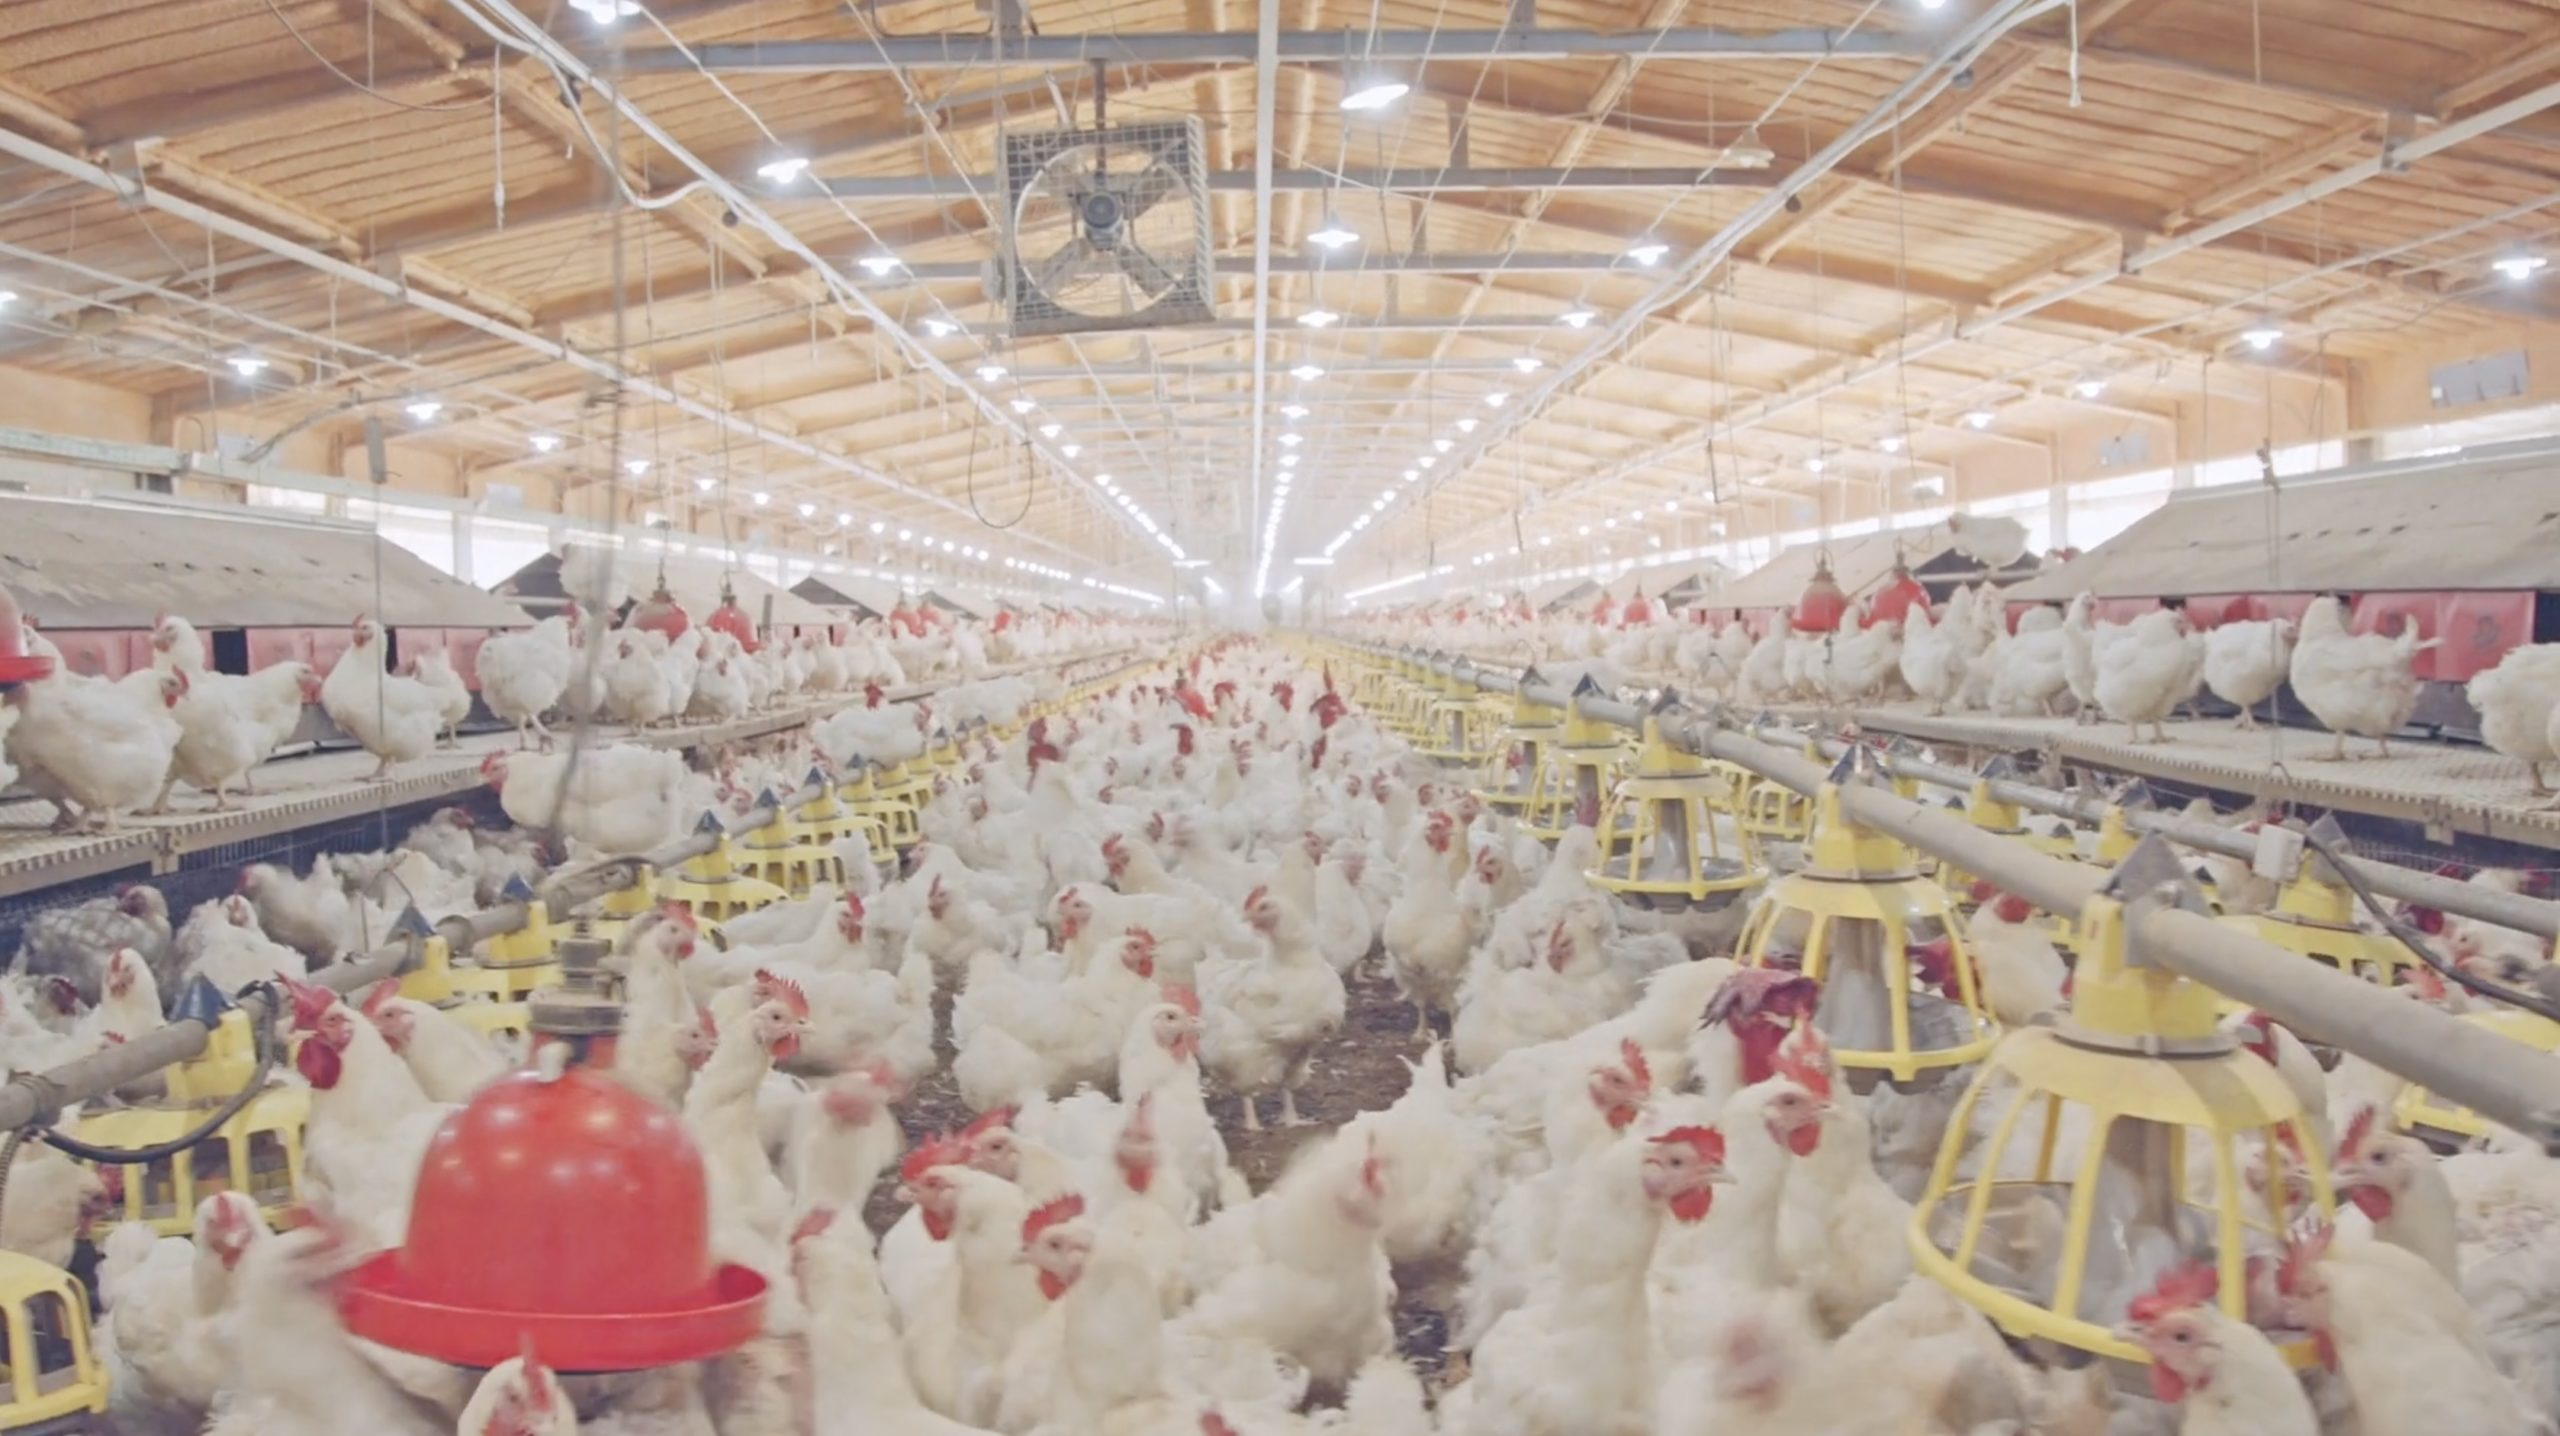 Chickens in a Concentrated Animal Feeding Operation or CAFO